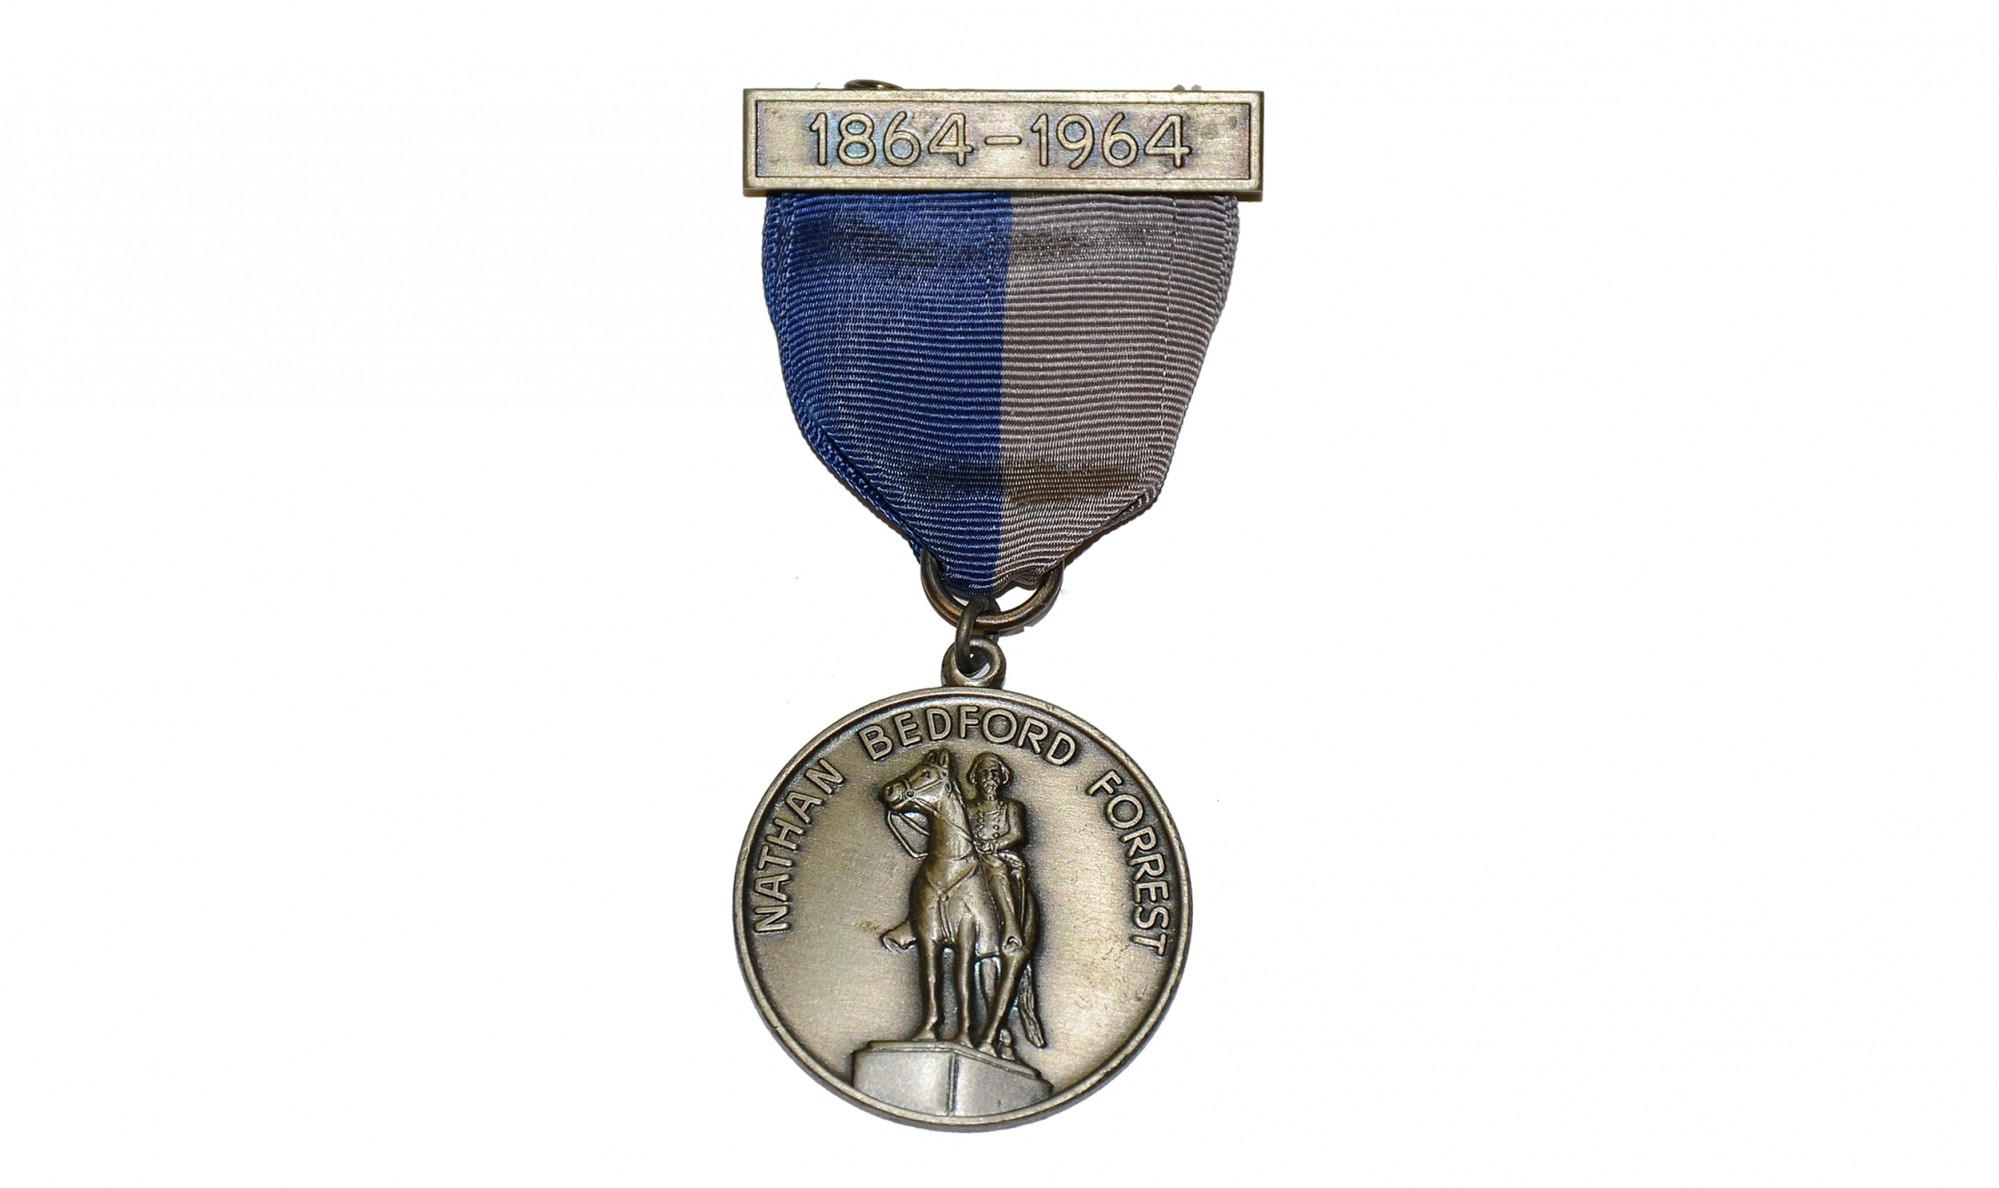 MEDAL TO COMEMORATE FORREST MEMPHIS RAID